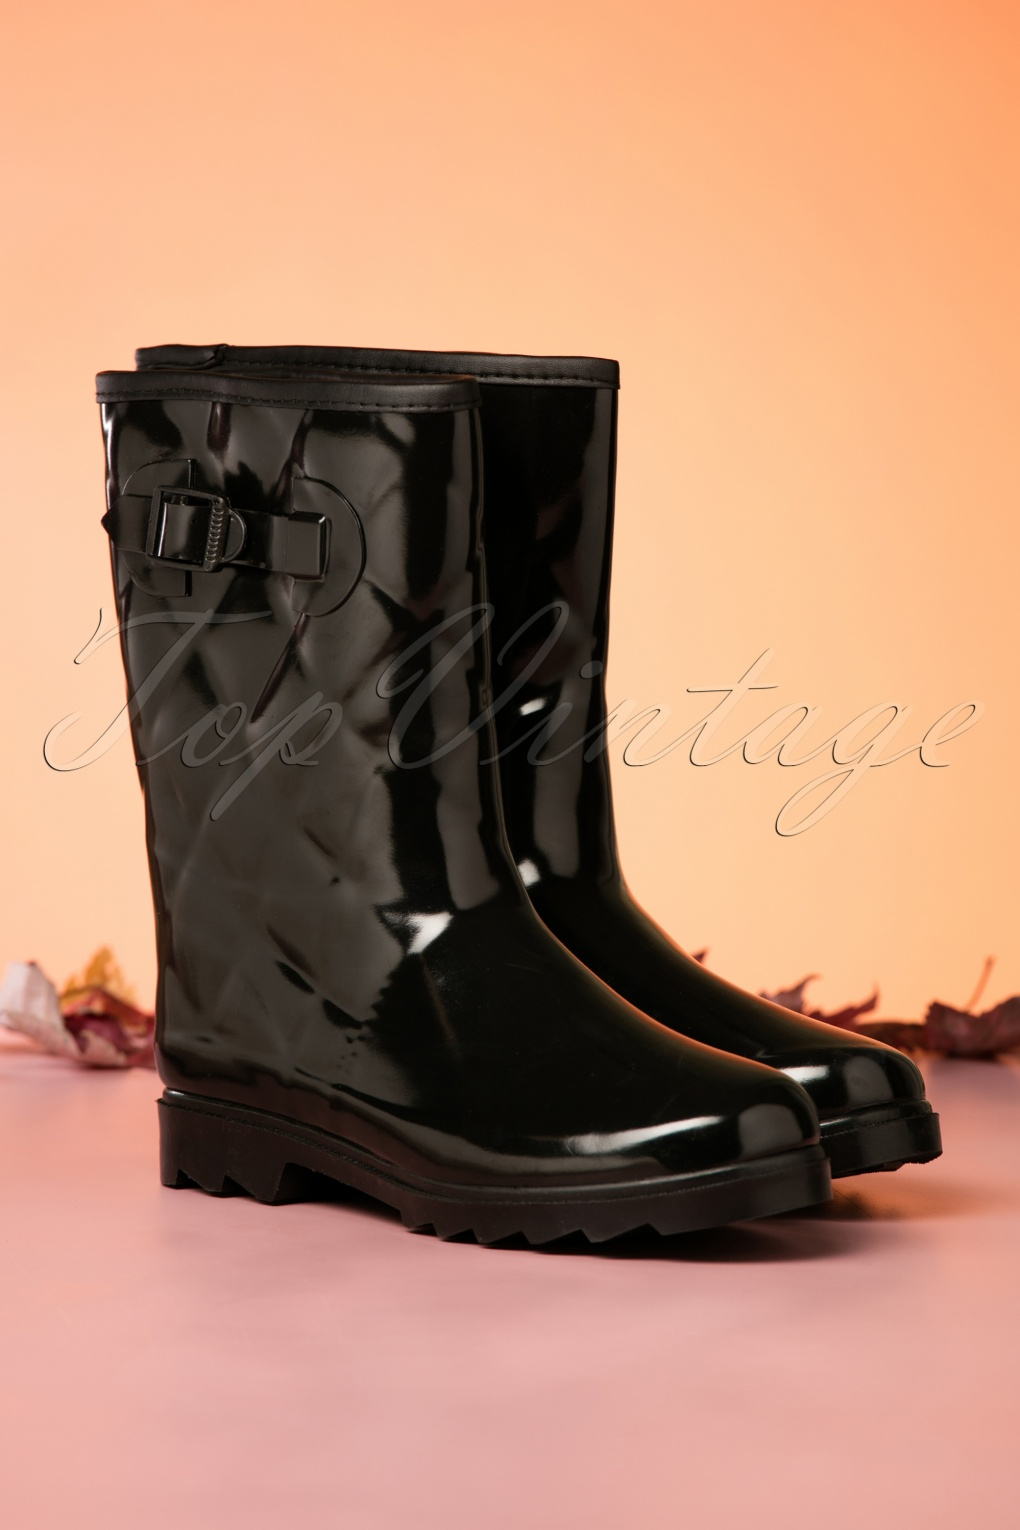 Vintage Boots- Buy Winter Retro Boots 60s Lesley Quilted Rain Boots in Black £31.63 AT vintagedancer.com